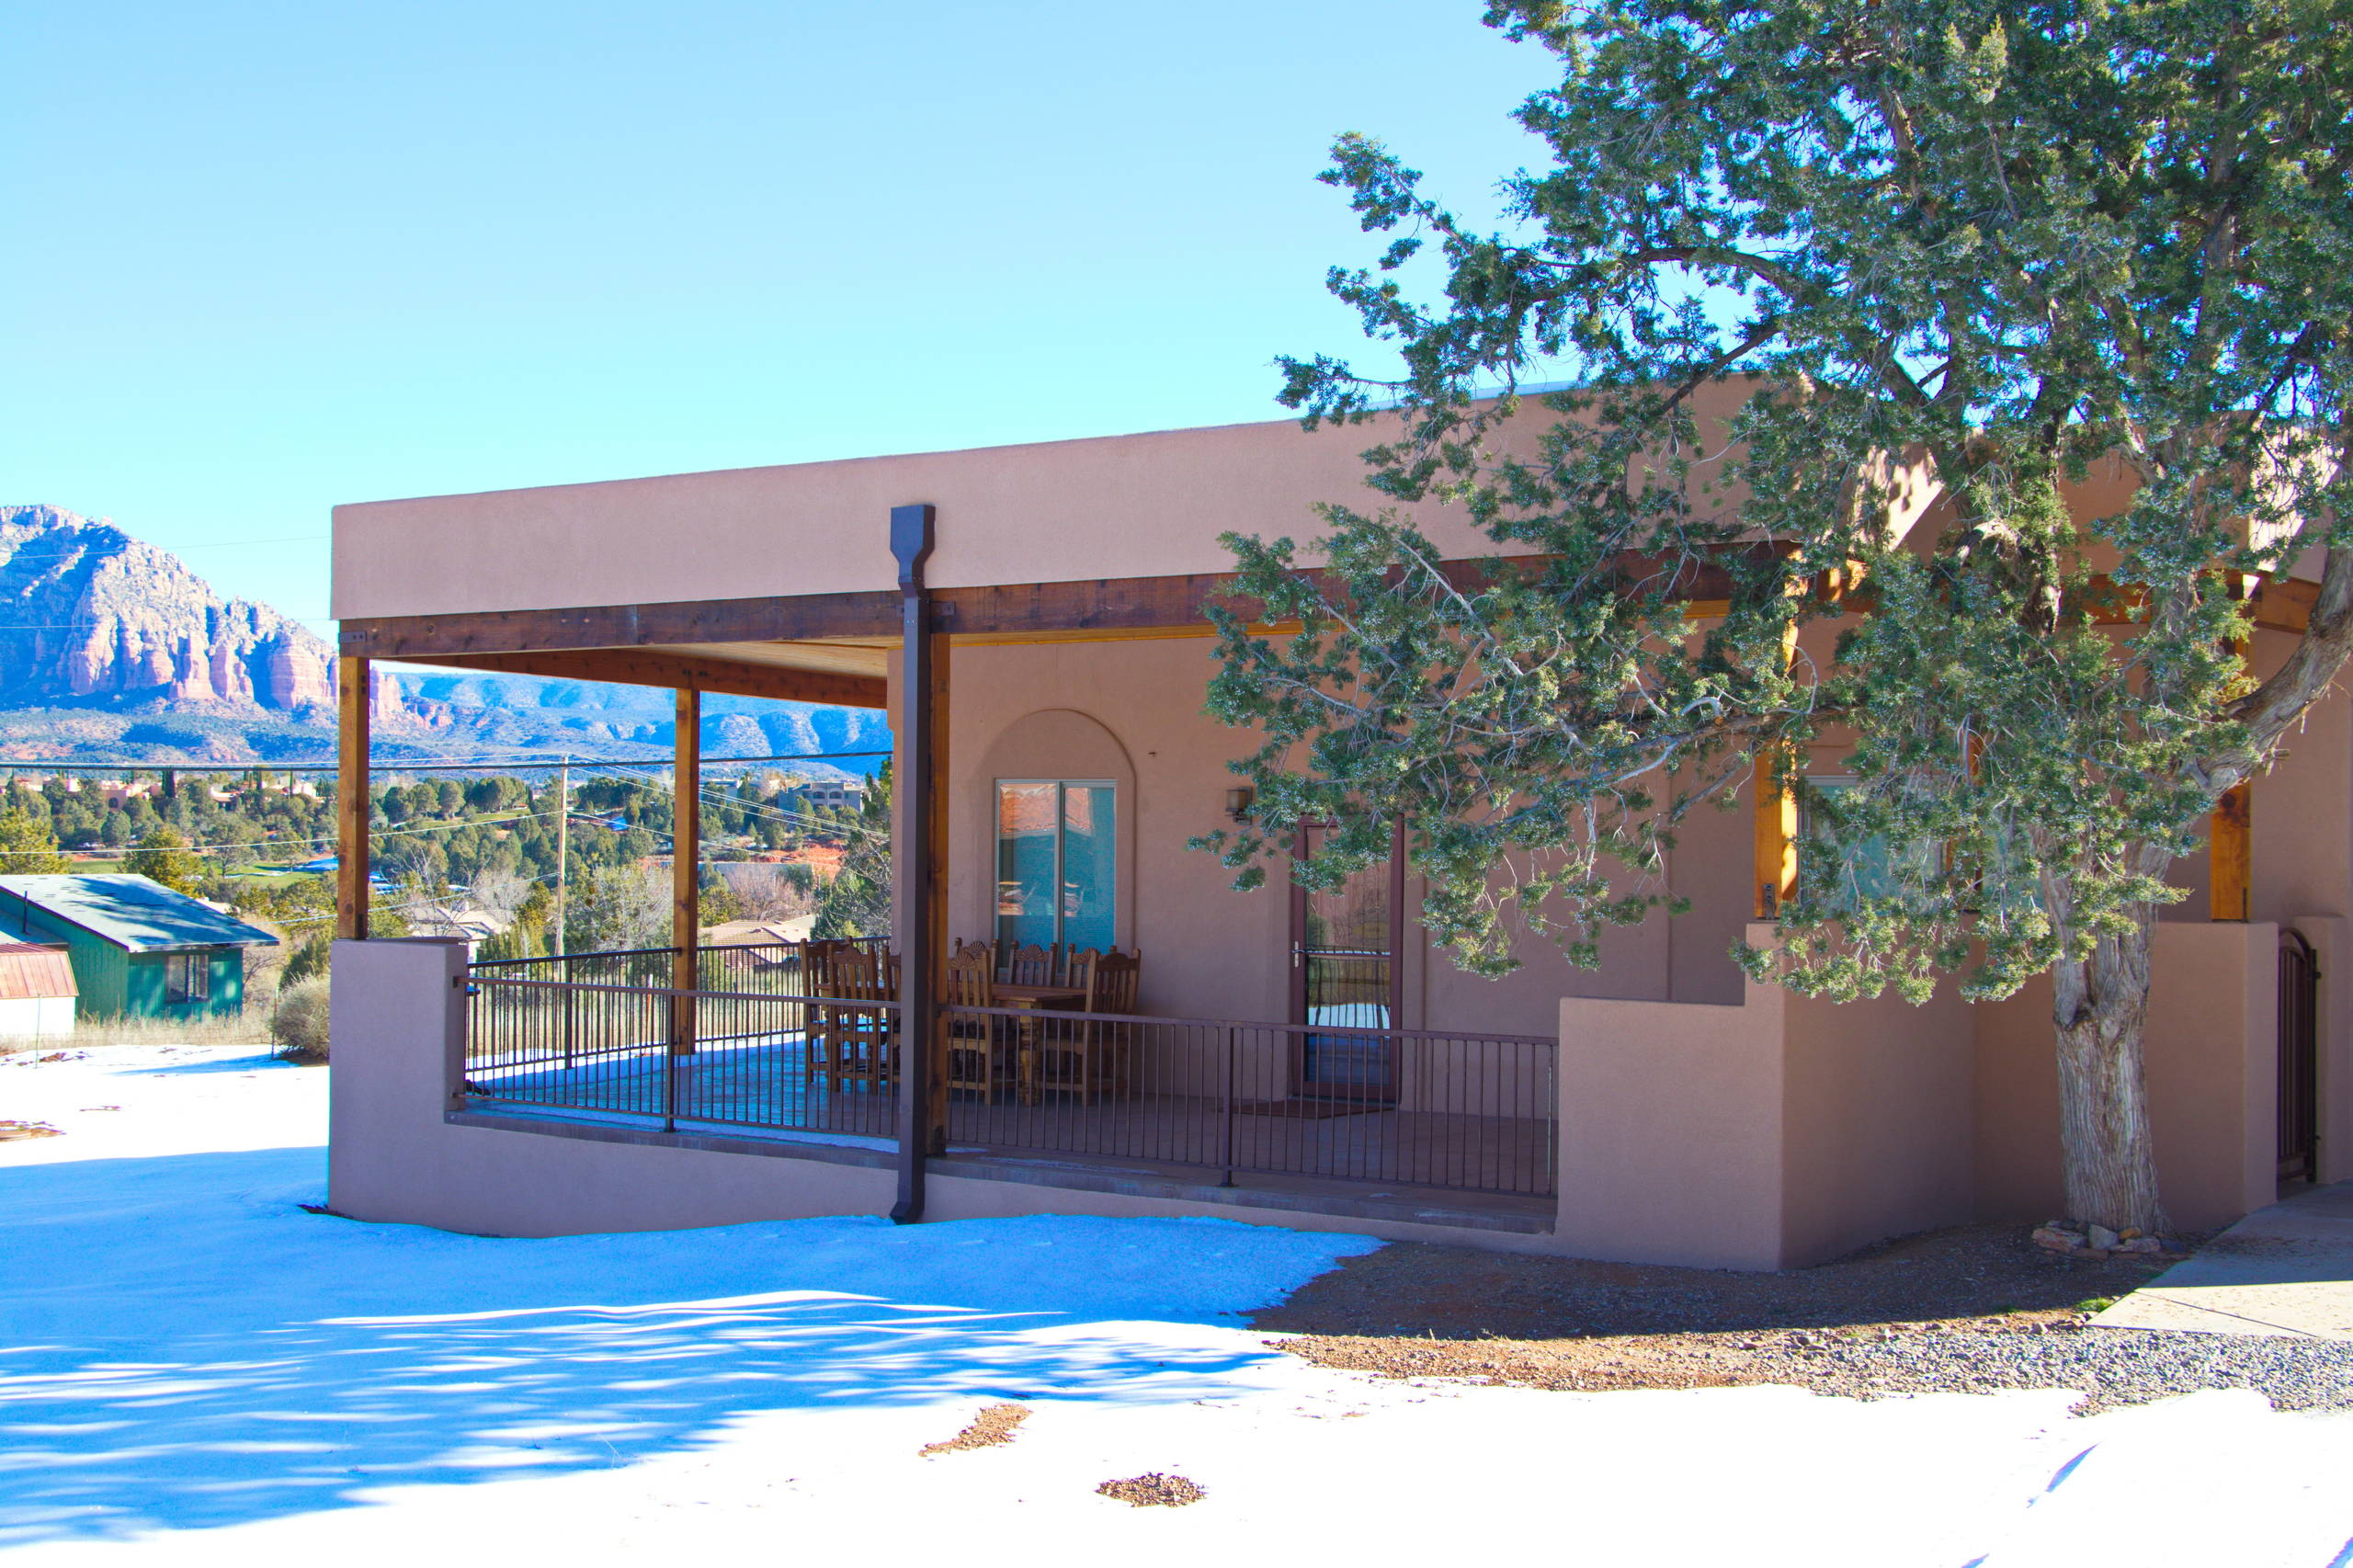 Wrap-around patio with roof deck